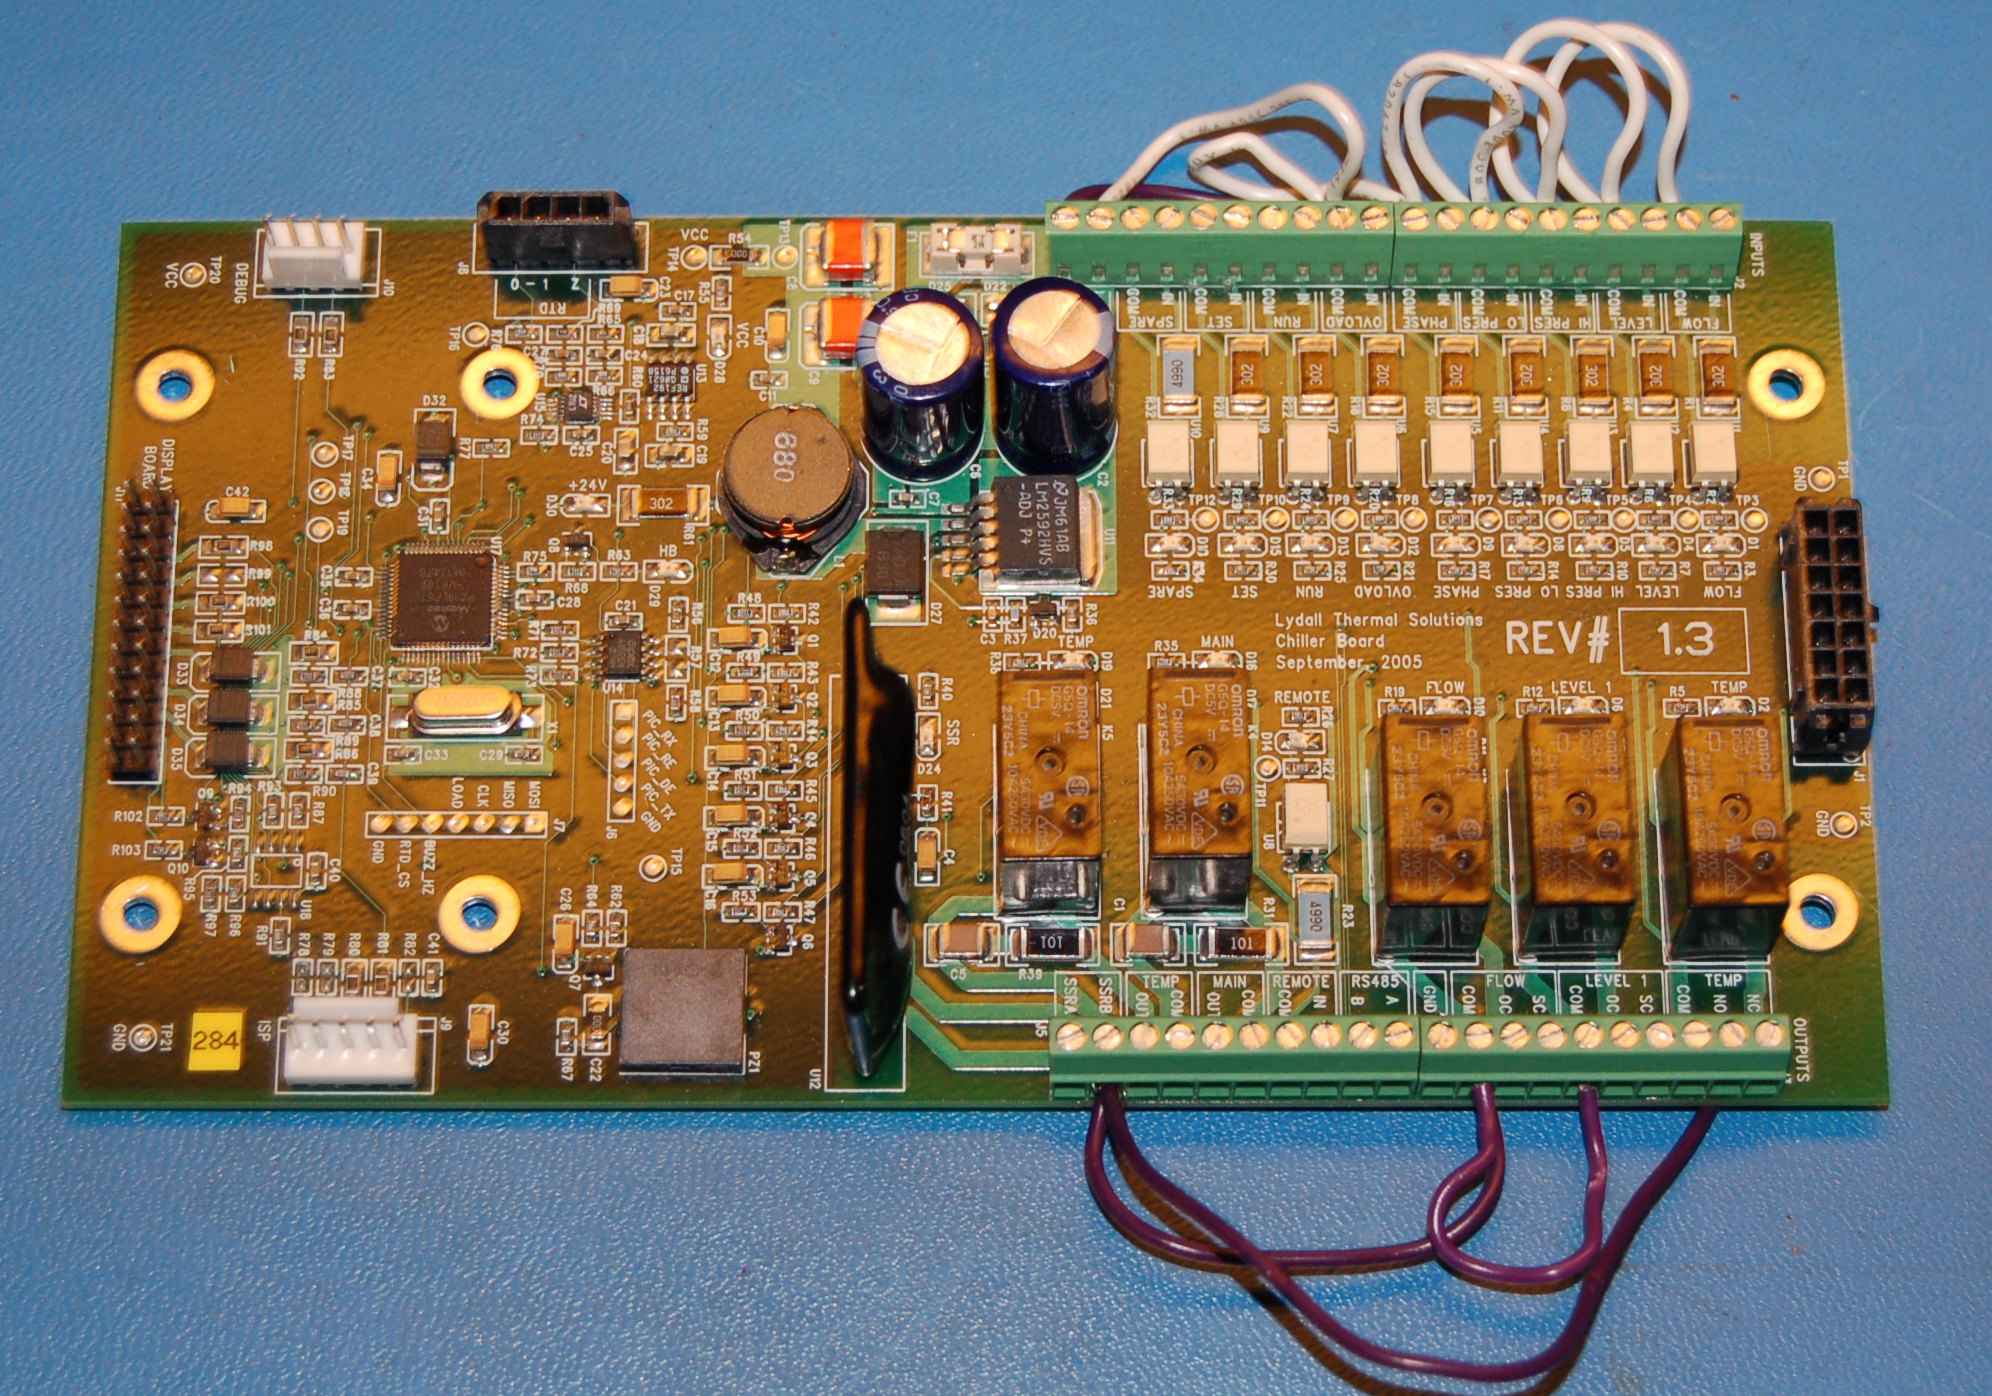 Lydall Controller Chiller Main Logic Board Rev. 1.3